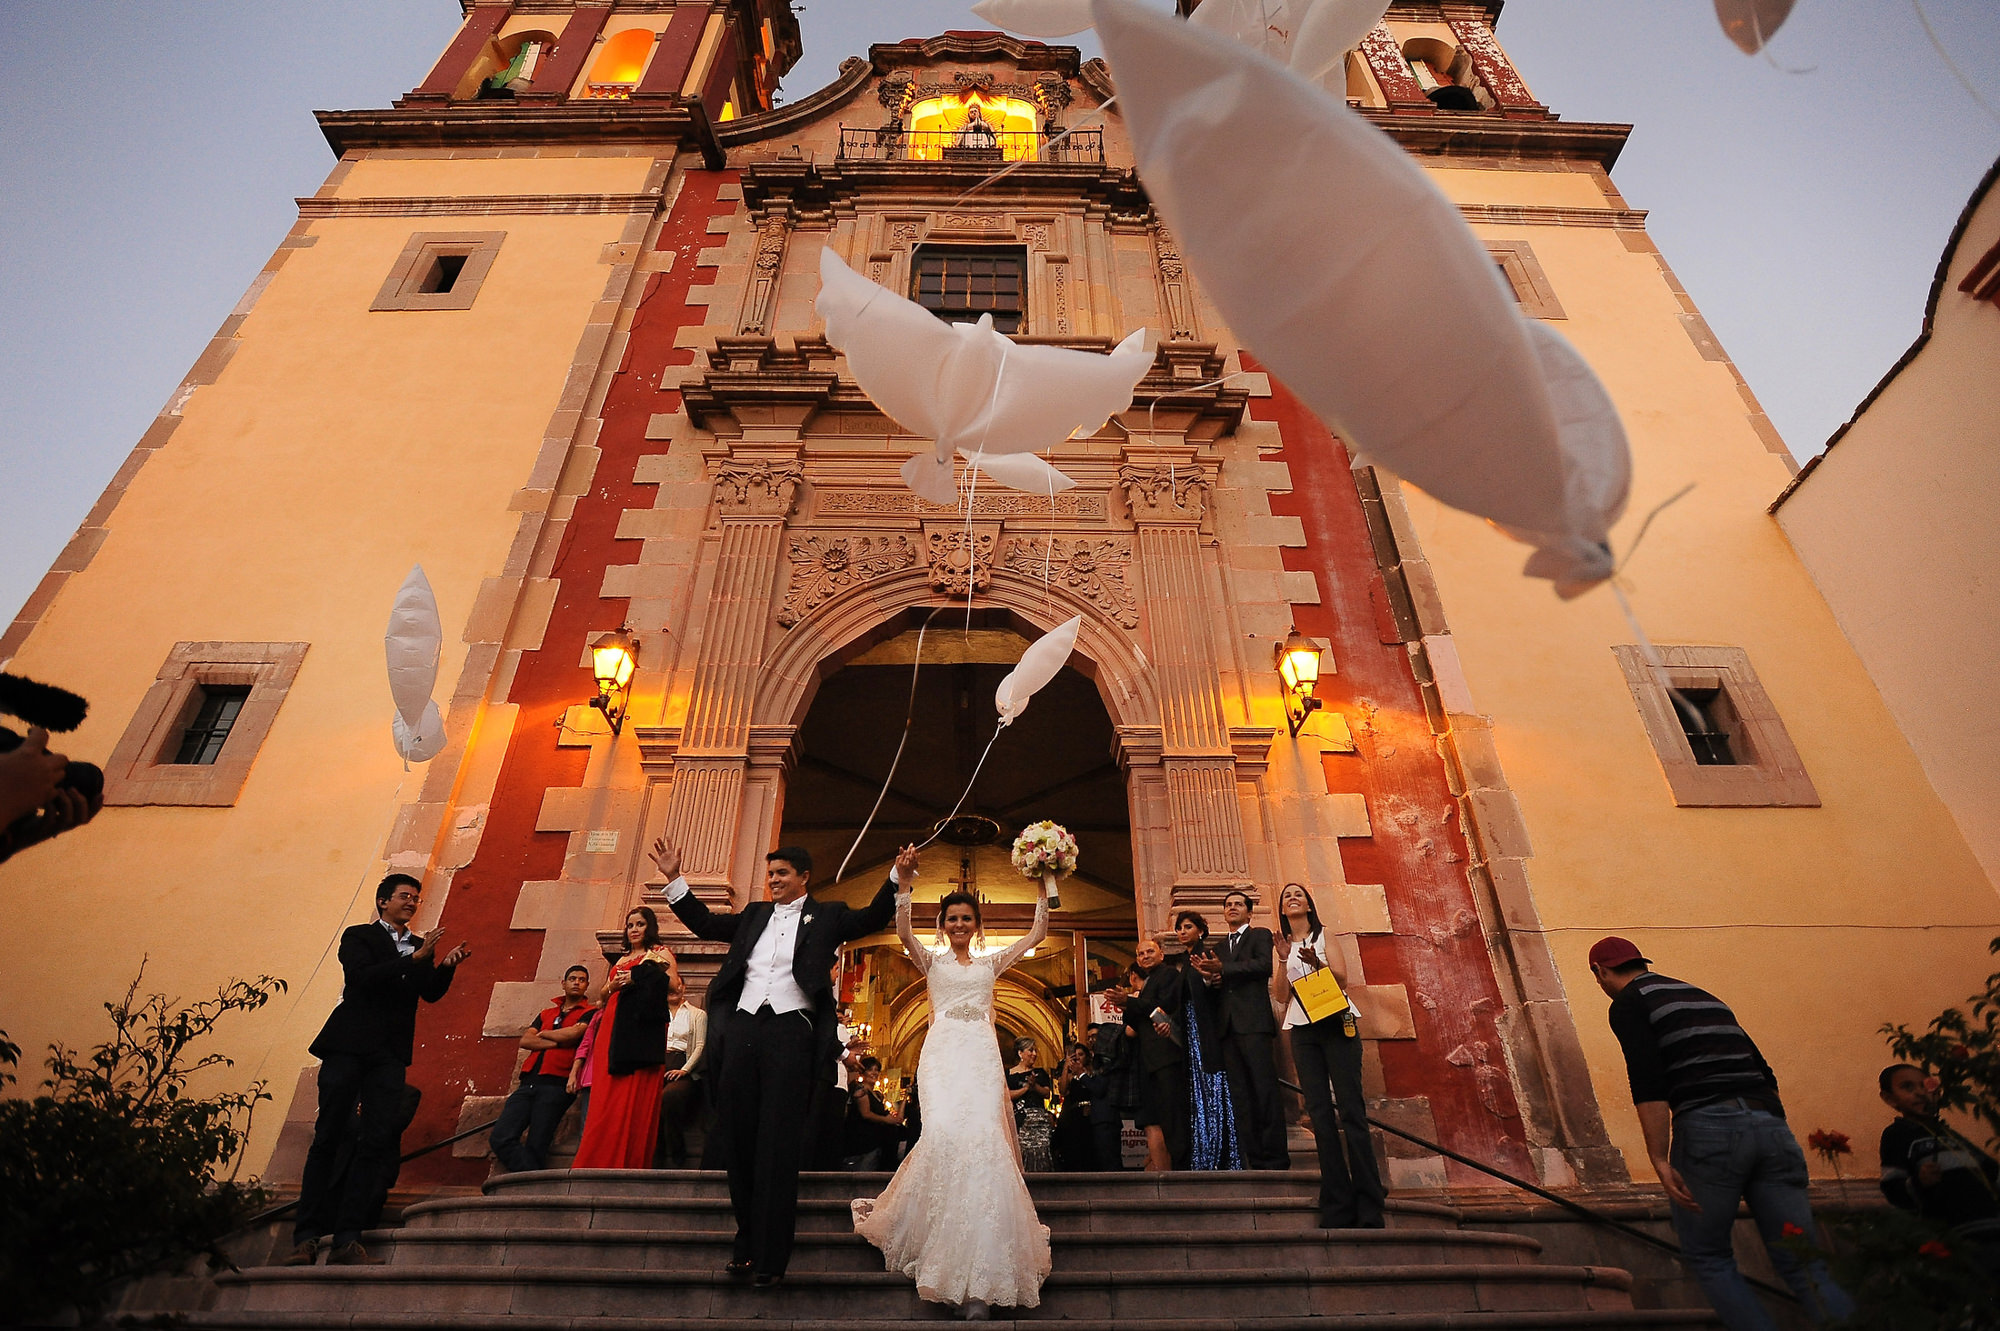 Just married at Spanish cathedral with white kites -  Daniel Aguilar Photographer